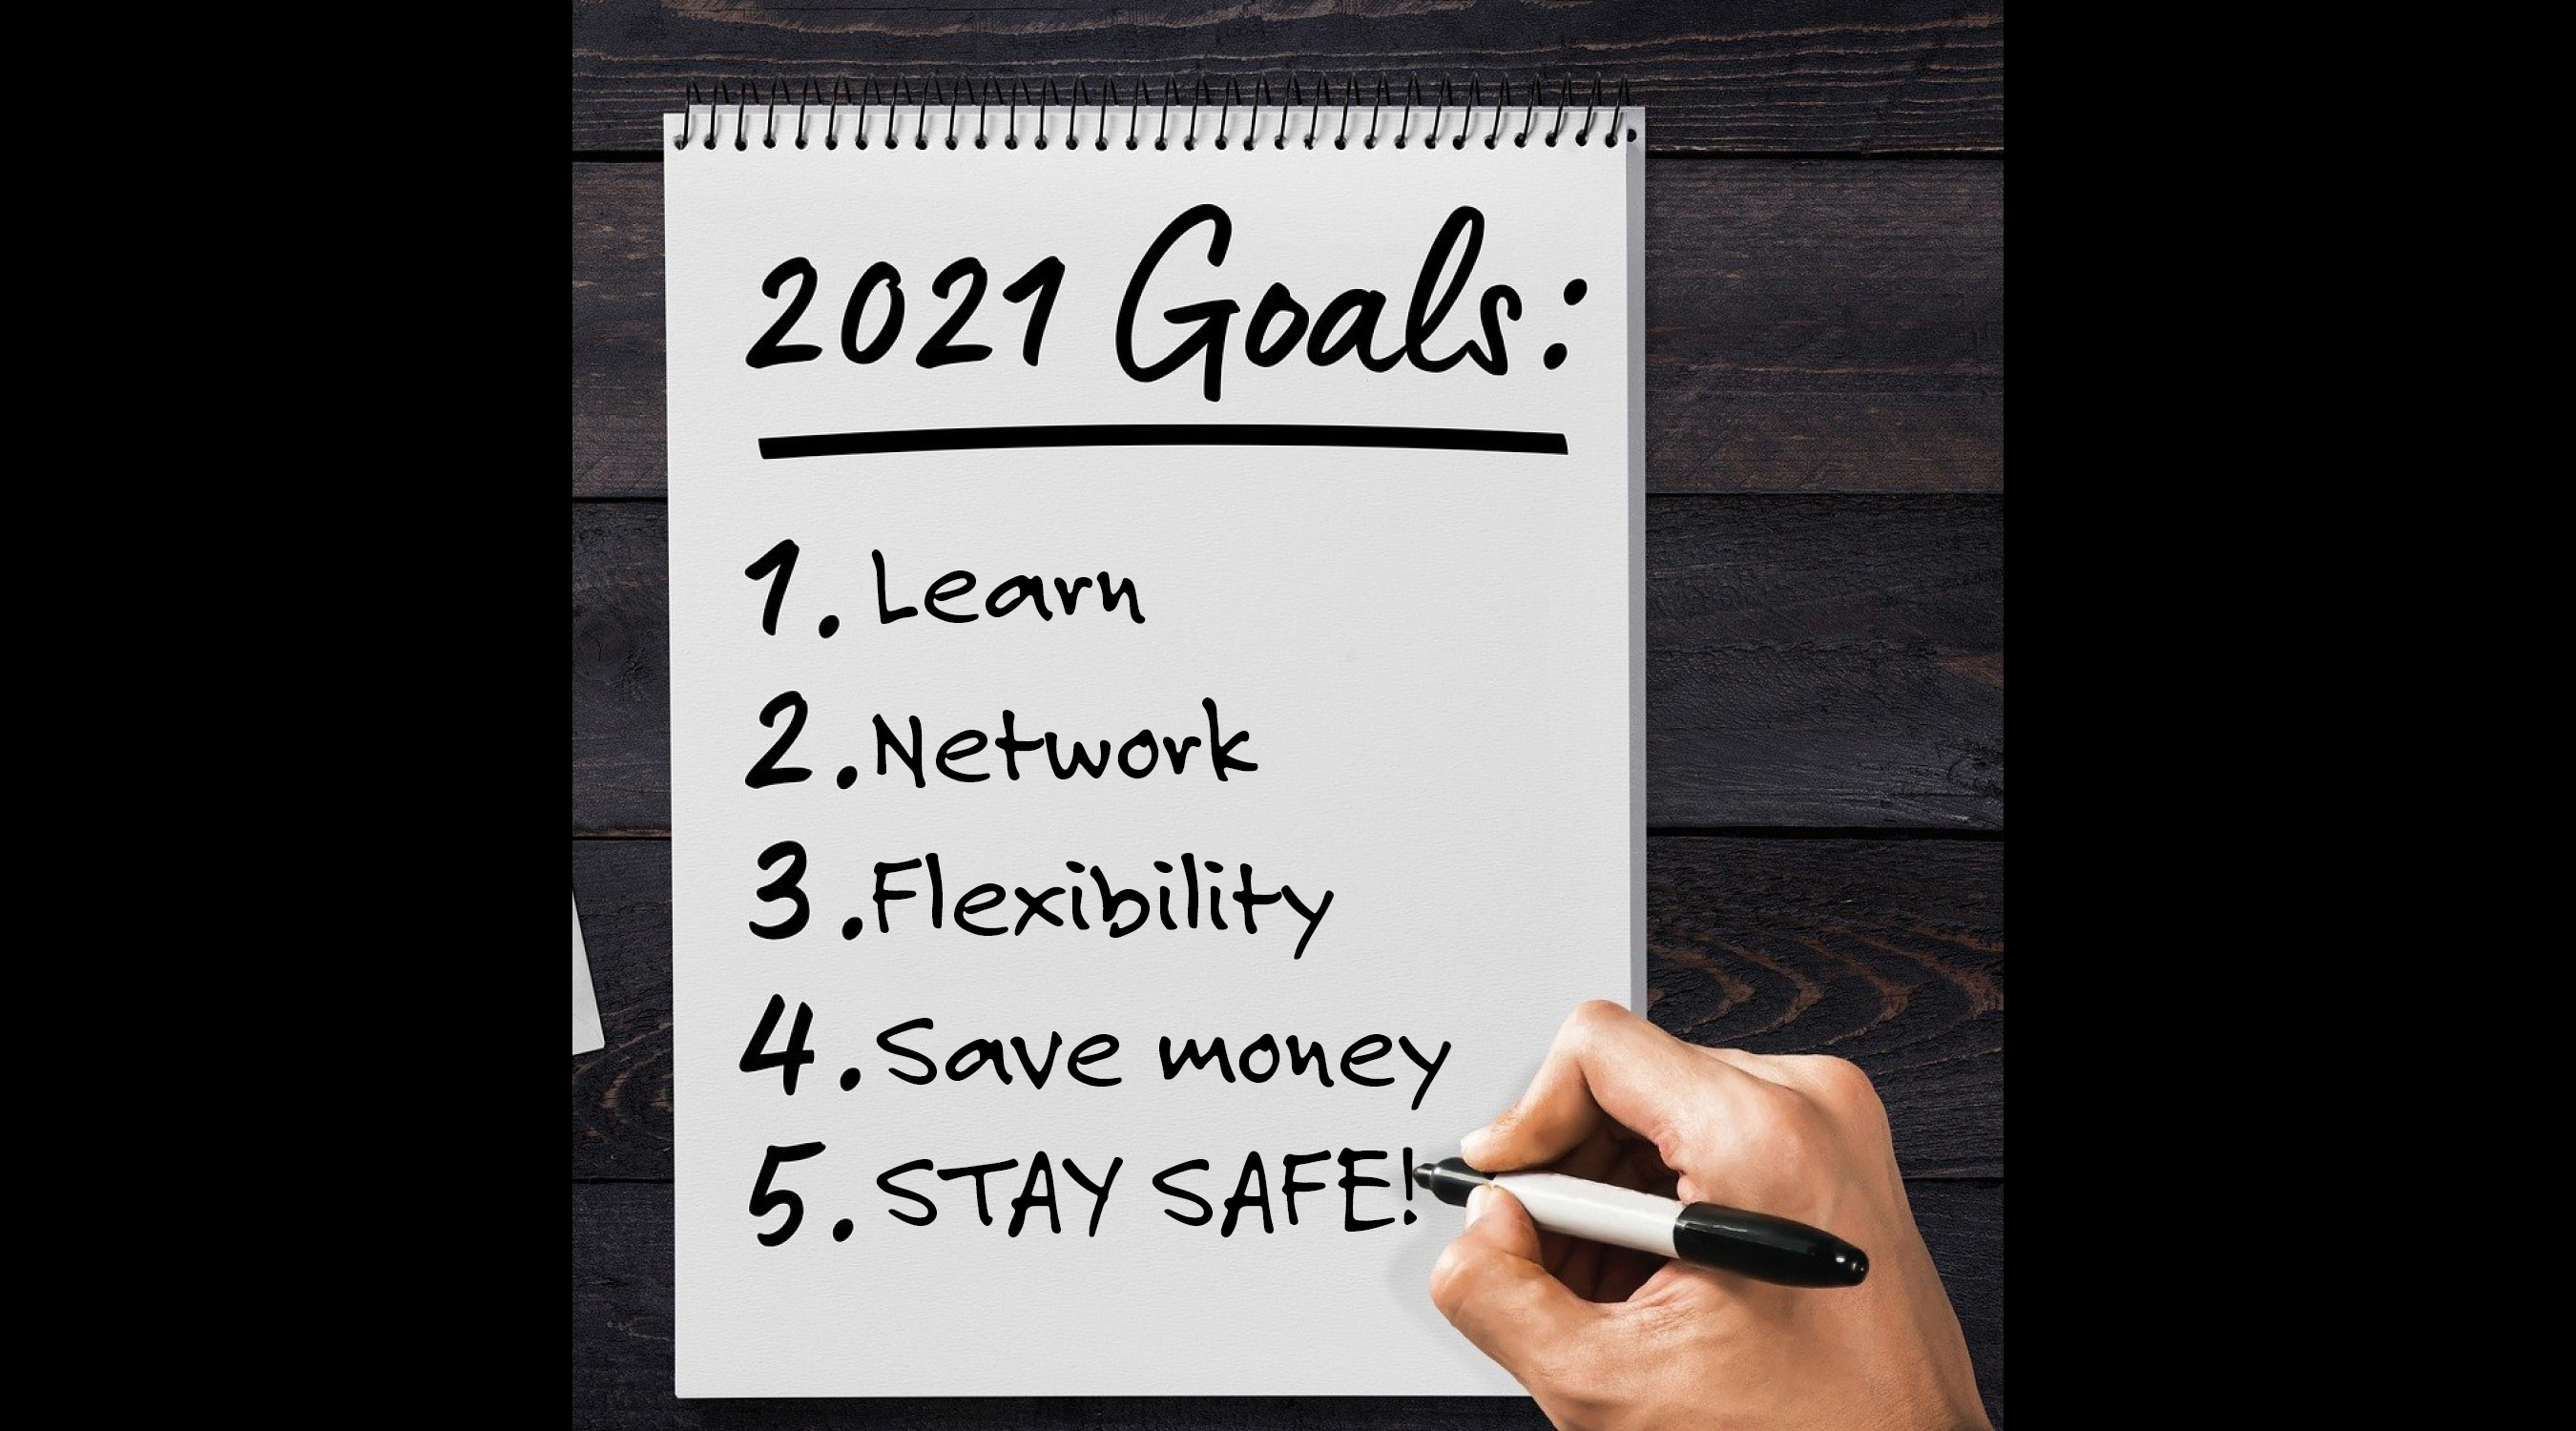 Resolve to Meet Your Goals in 2021!